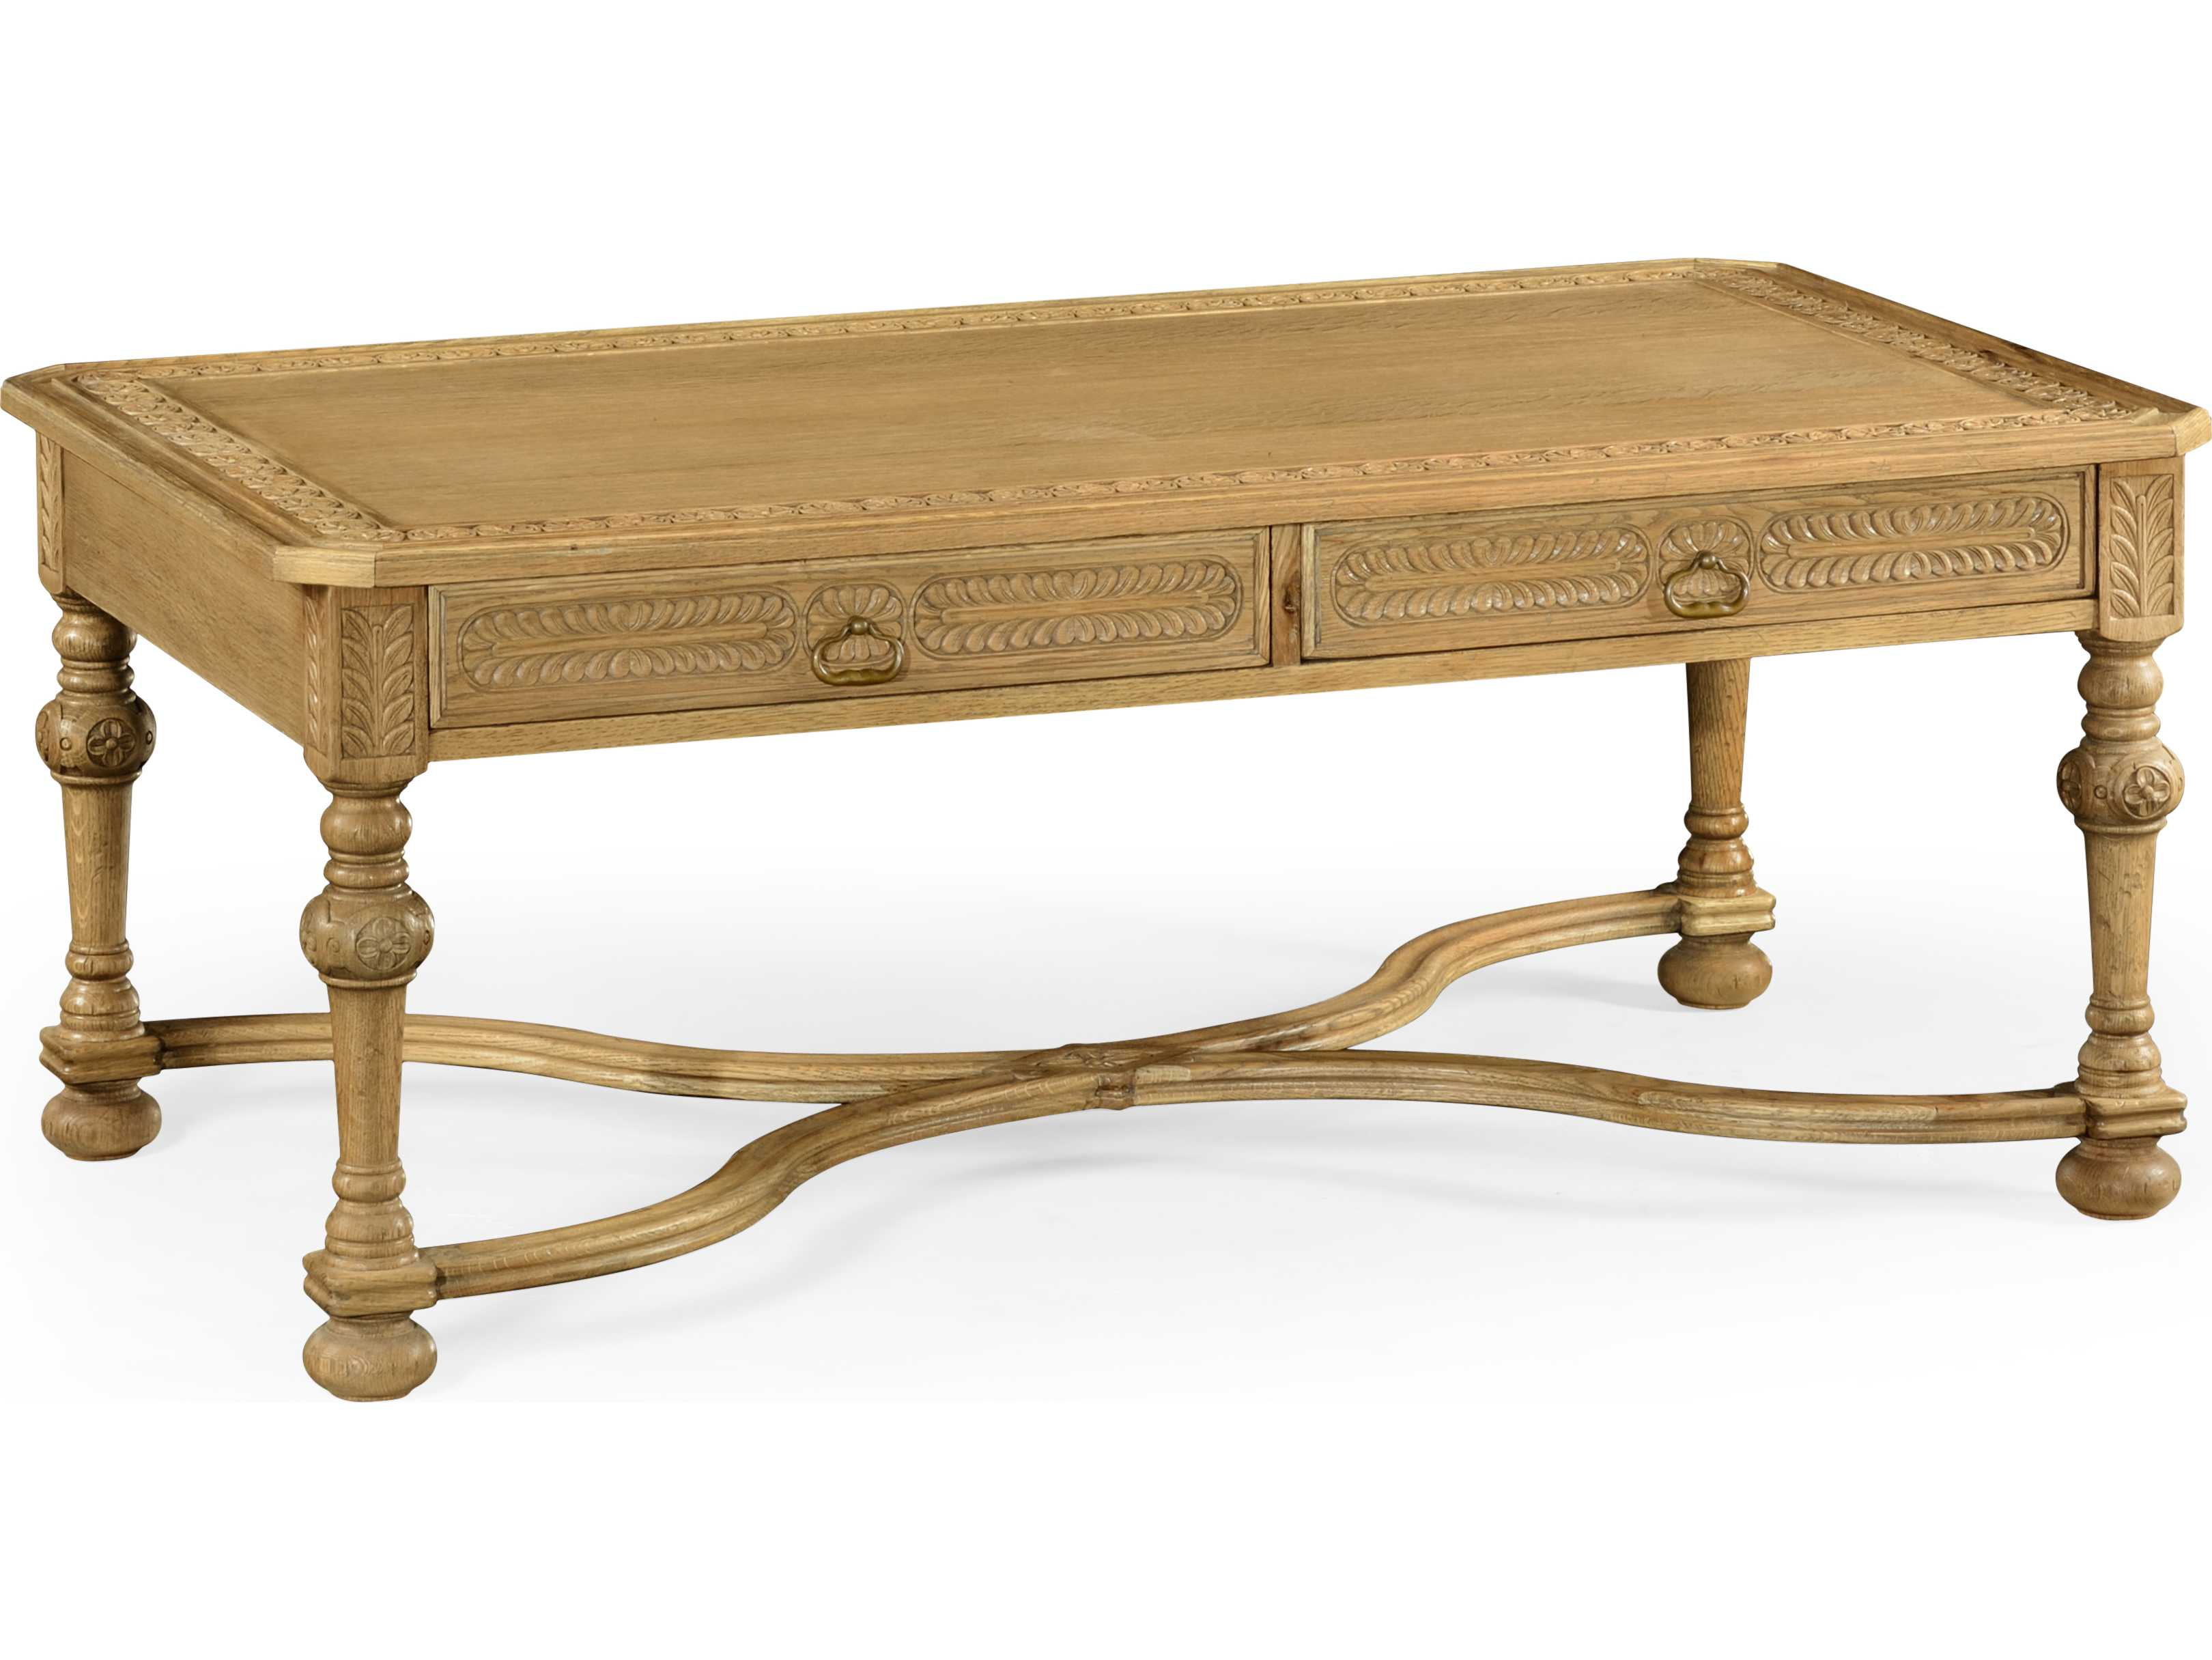 Jonathan charles natural oak light natural oak 50 x 29 5 rectangular coffee table jc493129l Light oak coffee tables